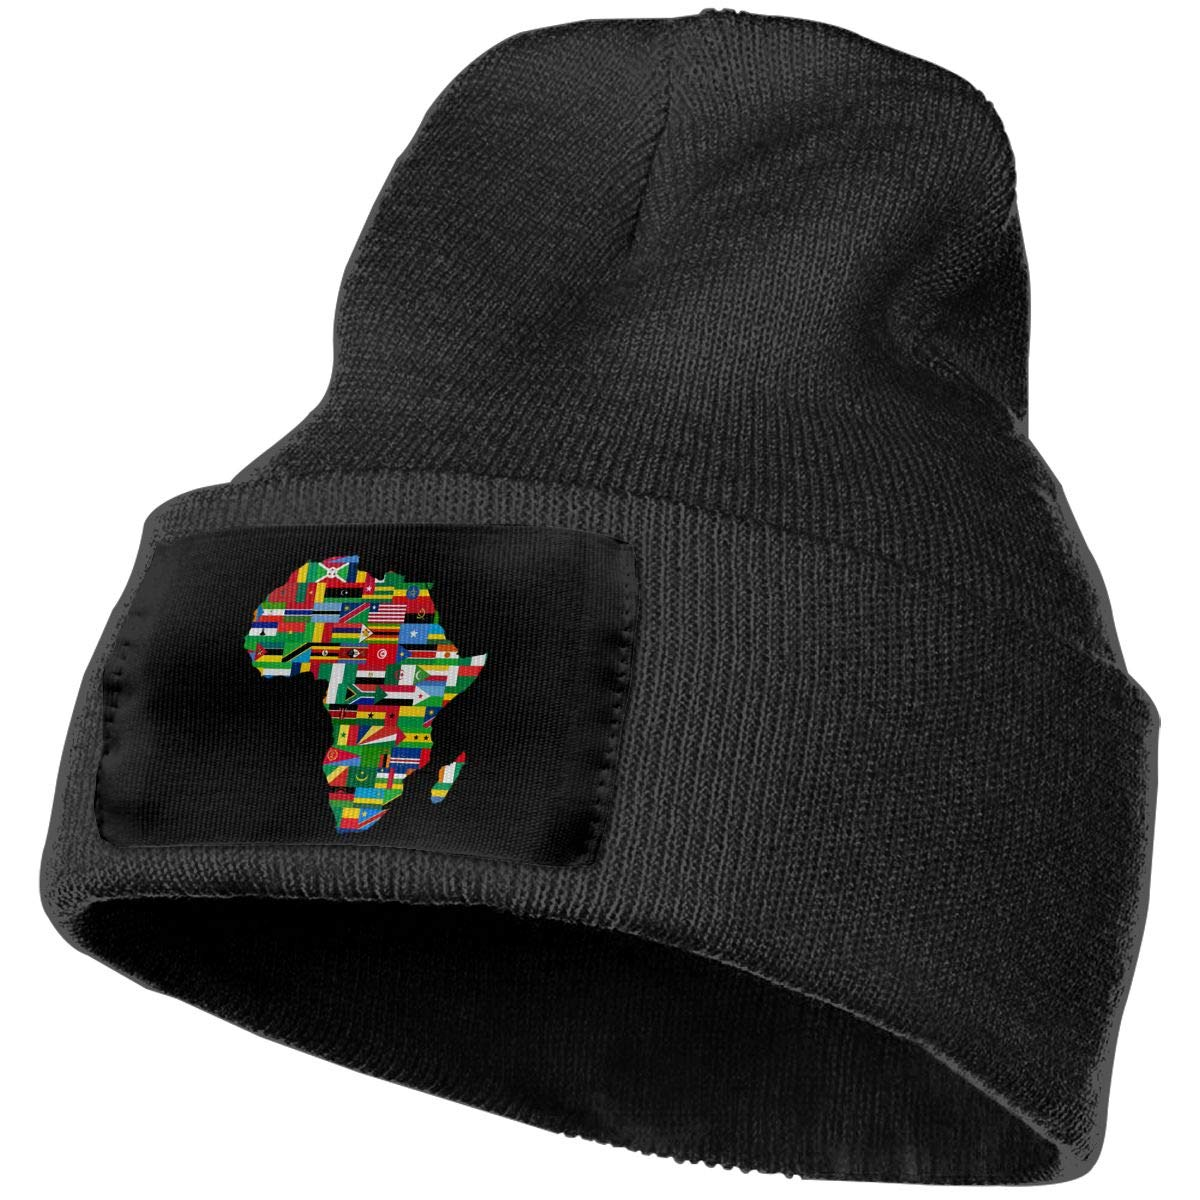 COLLJL-8 Men//Women Africa Flags Outdoor Fashion Knit Beanies Hat Soft Winter Knit Caps